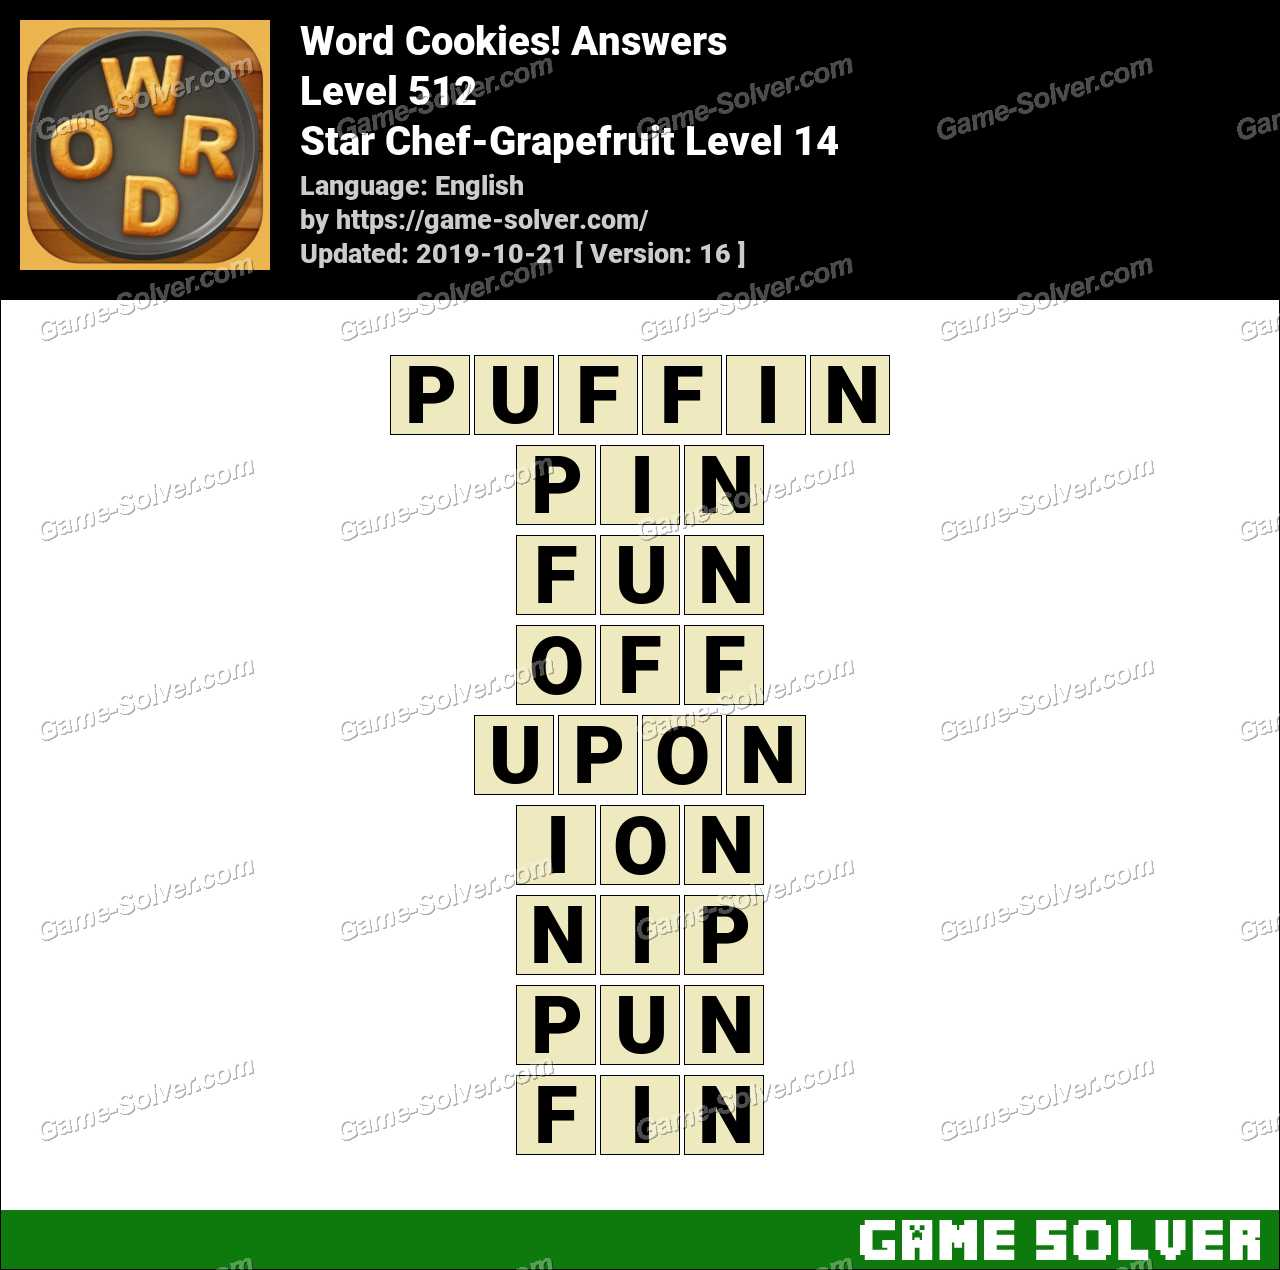 Word Cookies Star Chef-Grapefruit Level 14 Answers